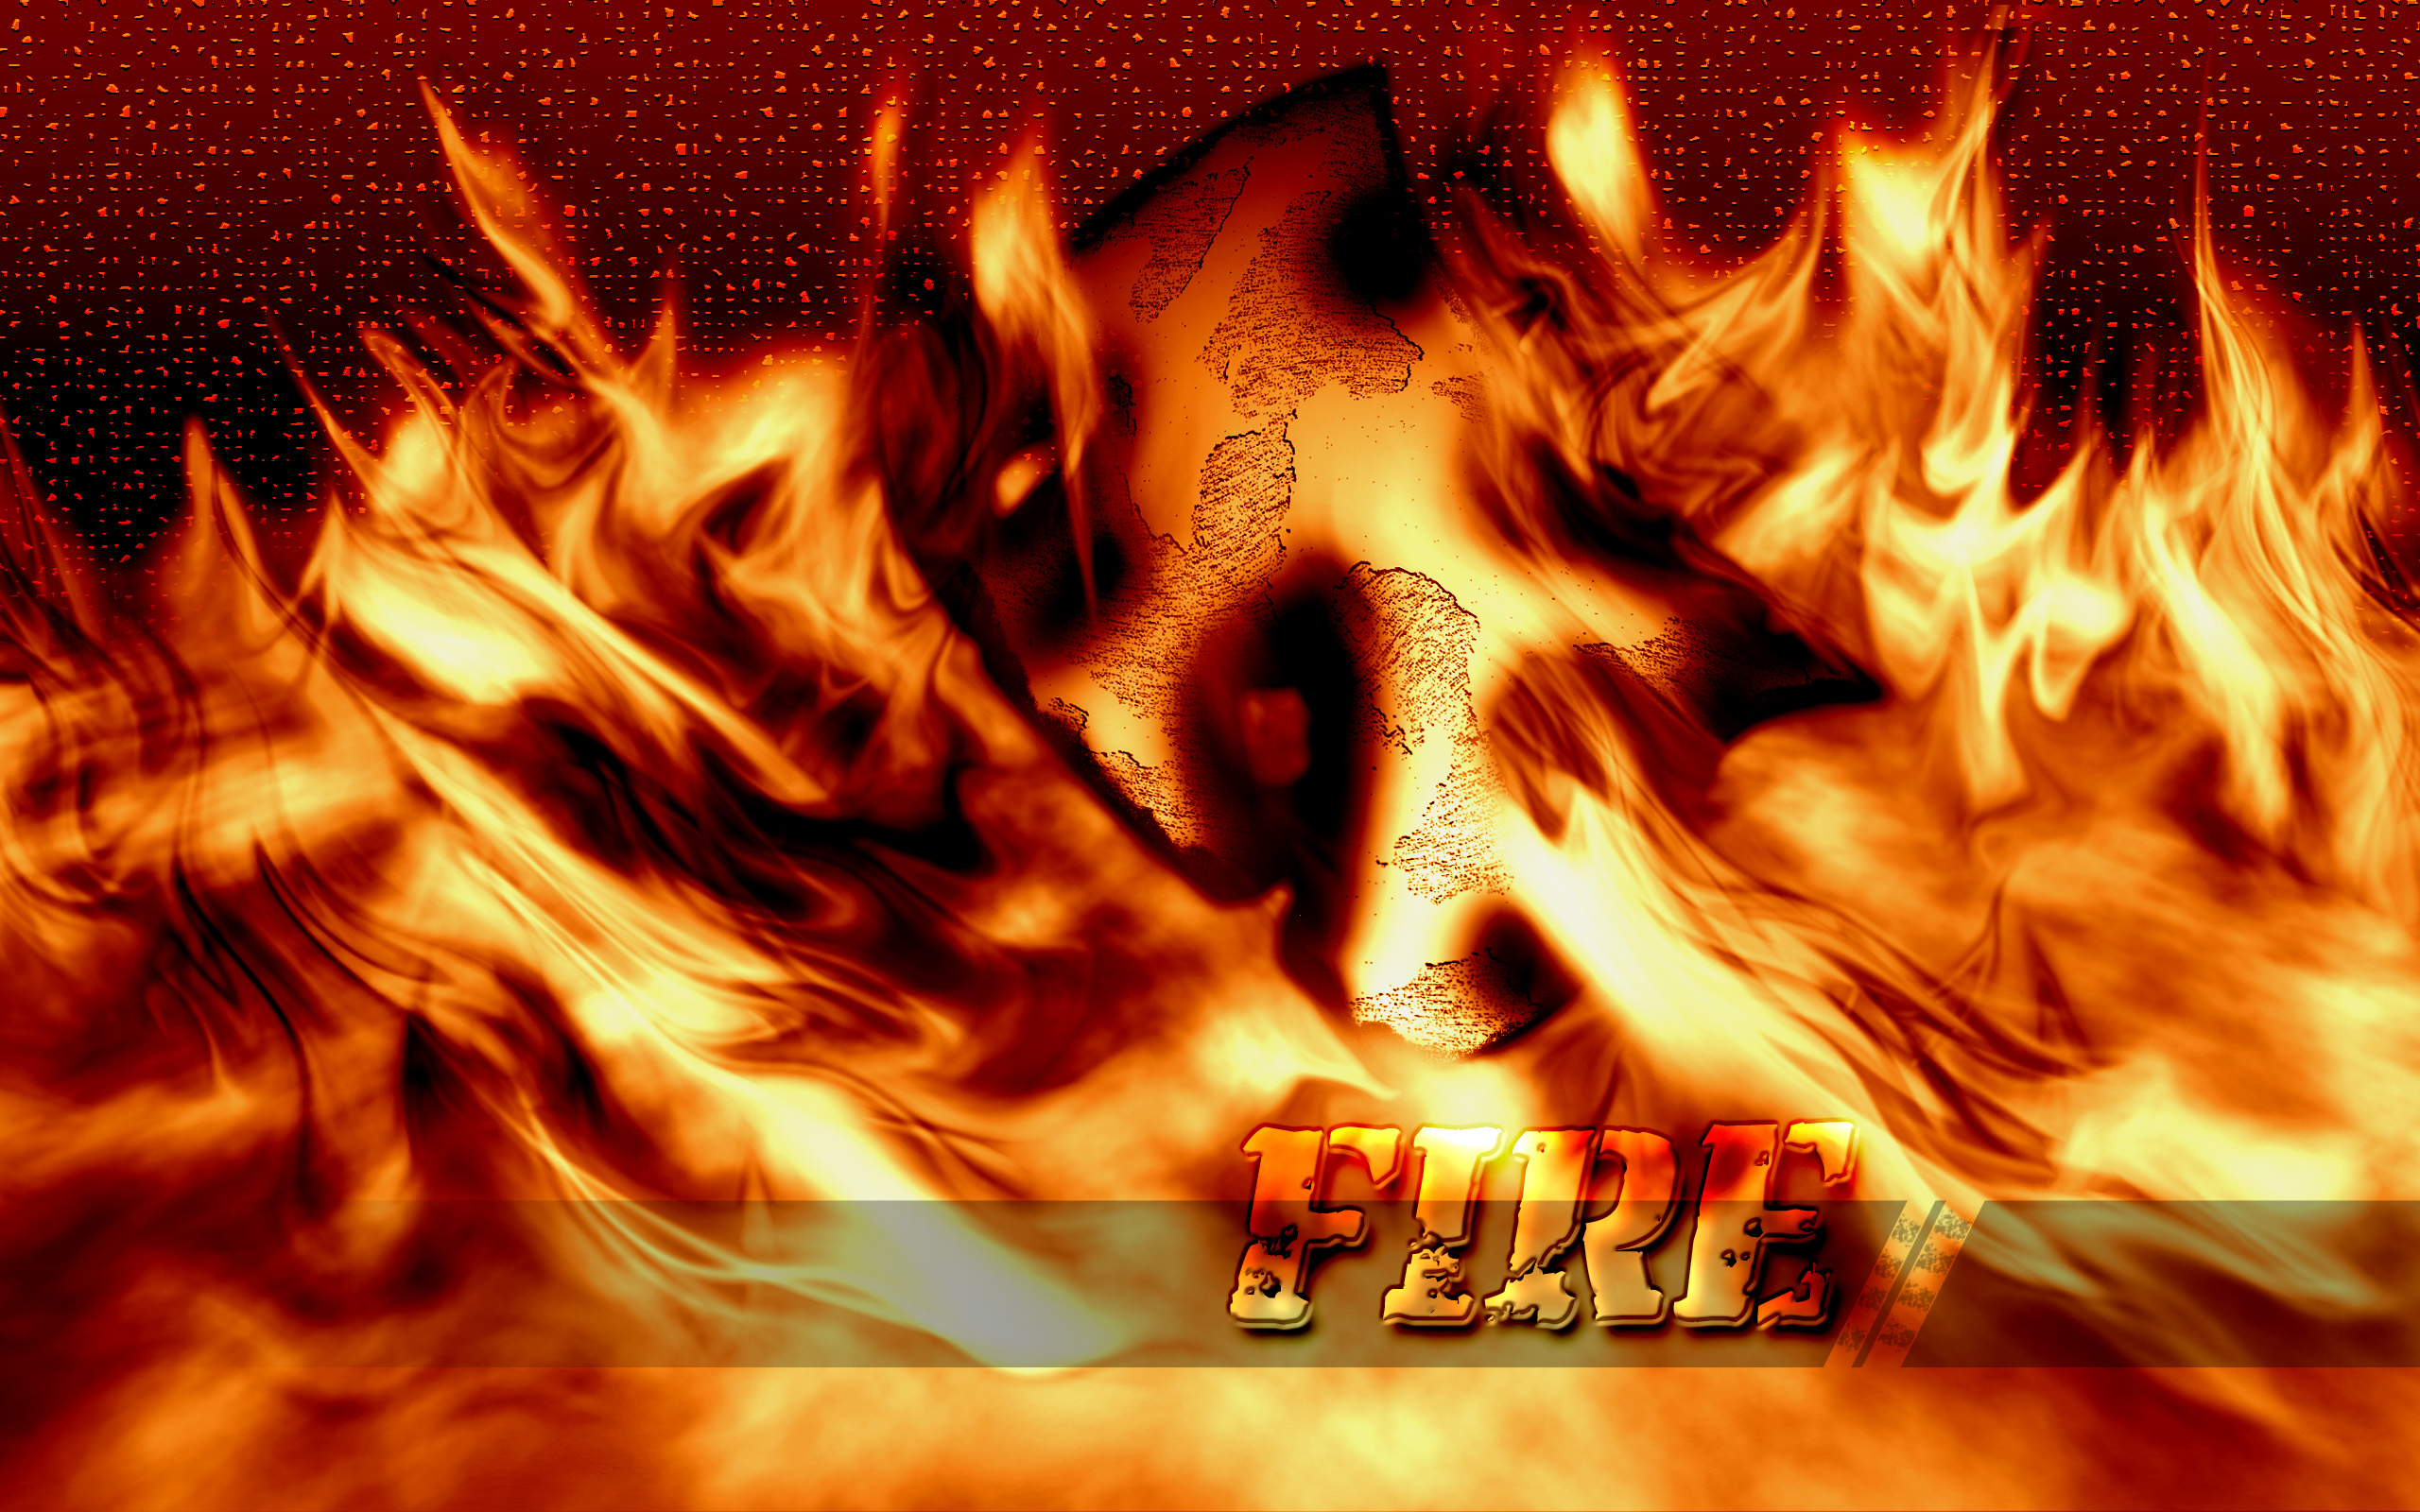 hd wallpapers desktop fire - photo #39